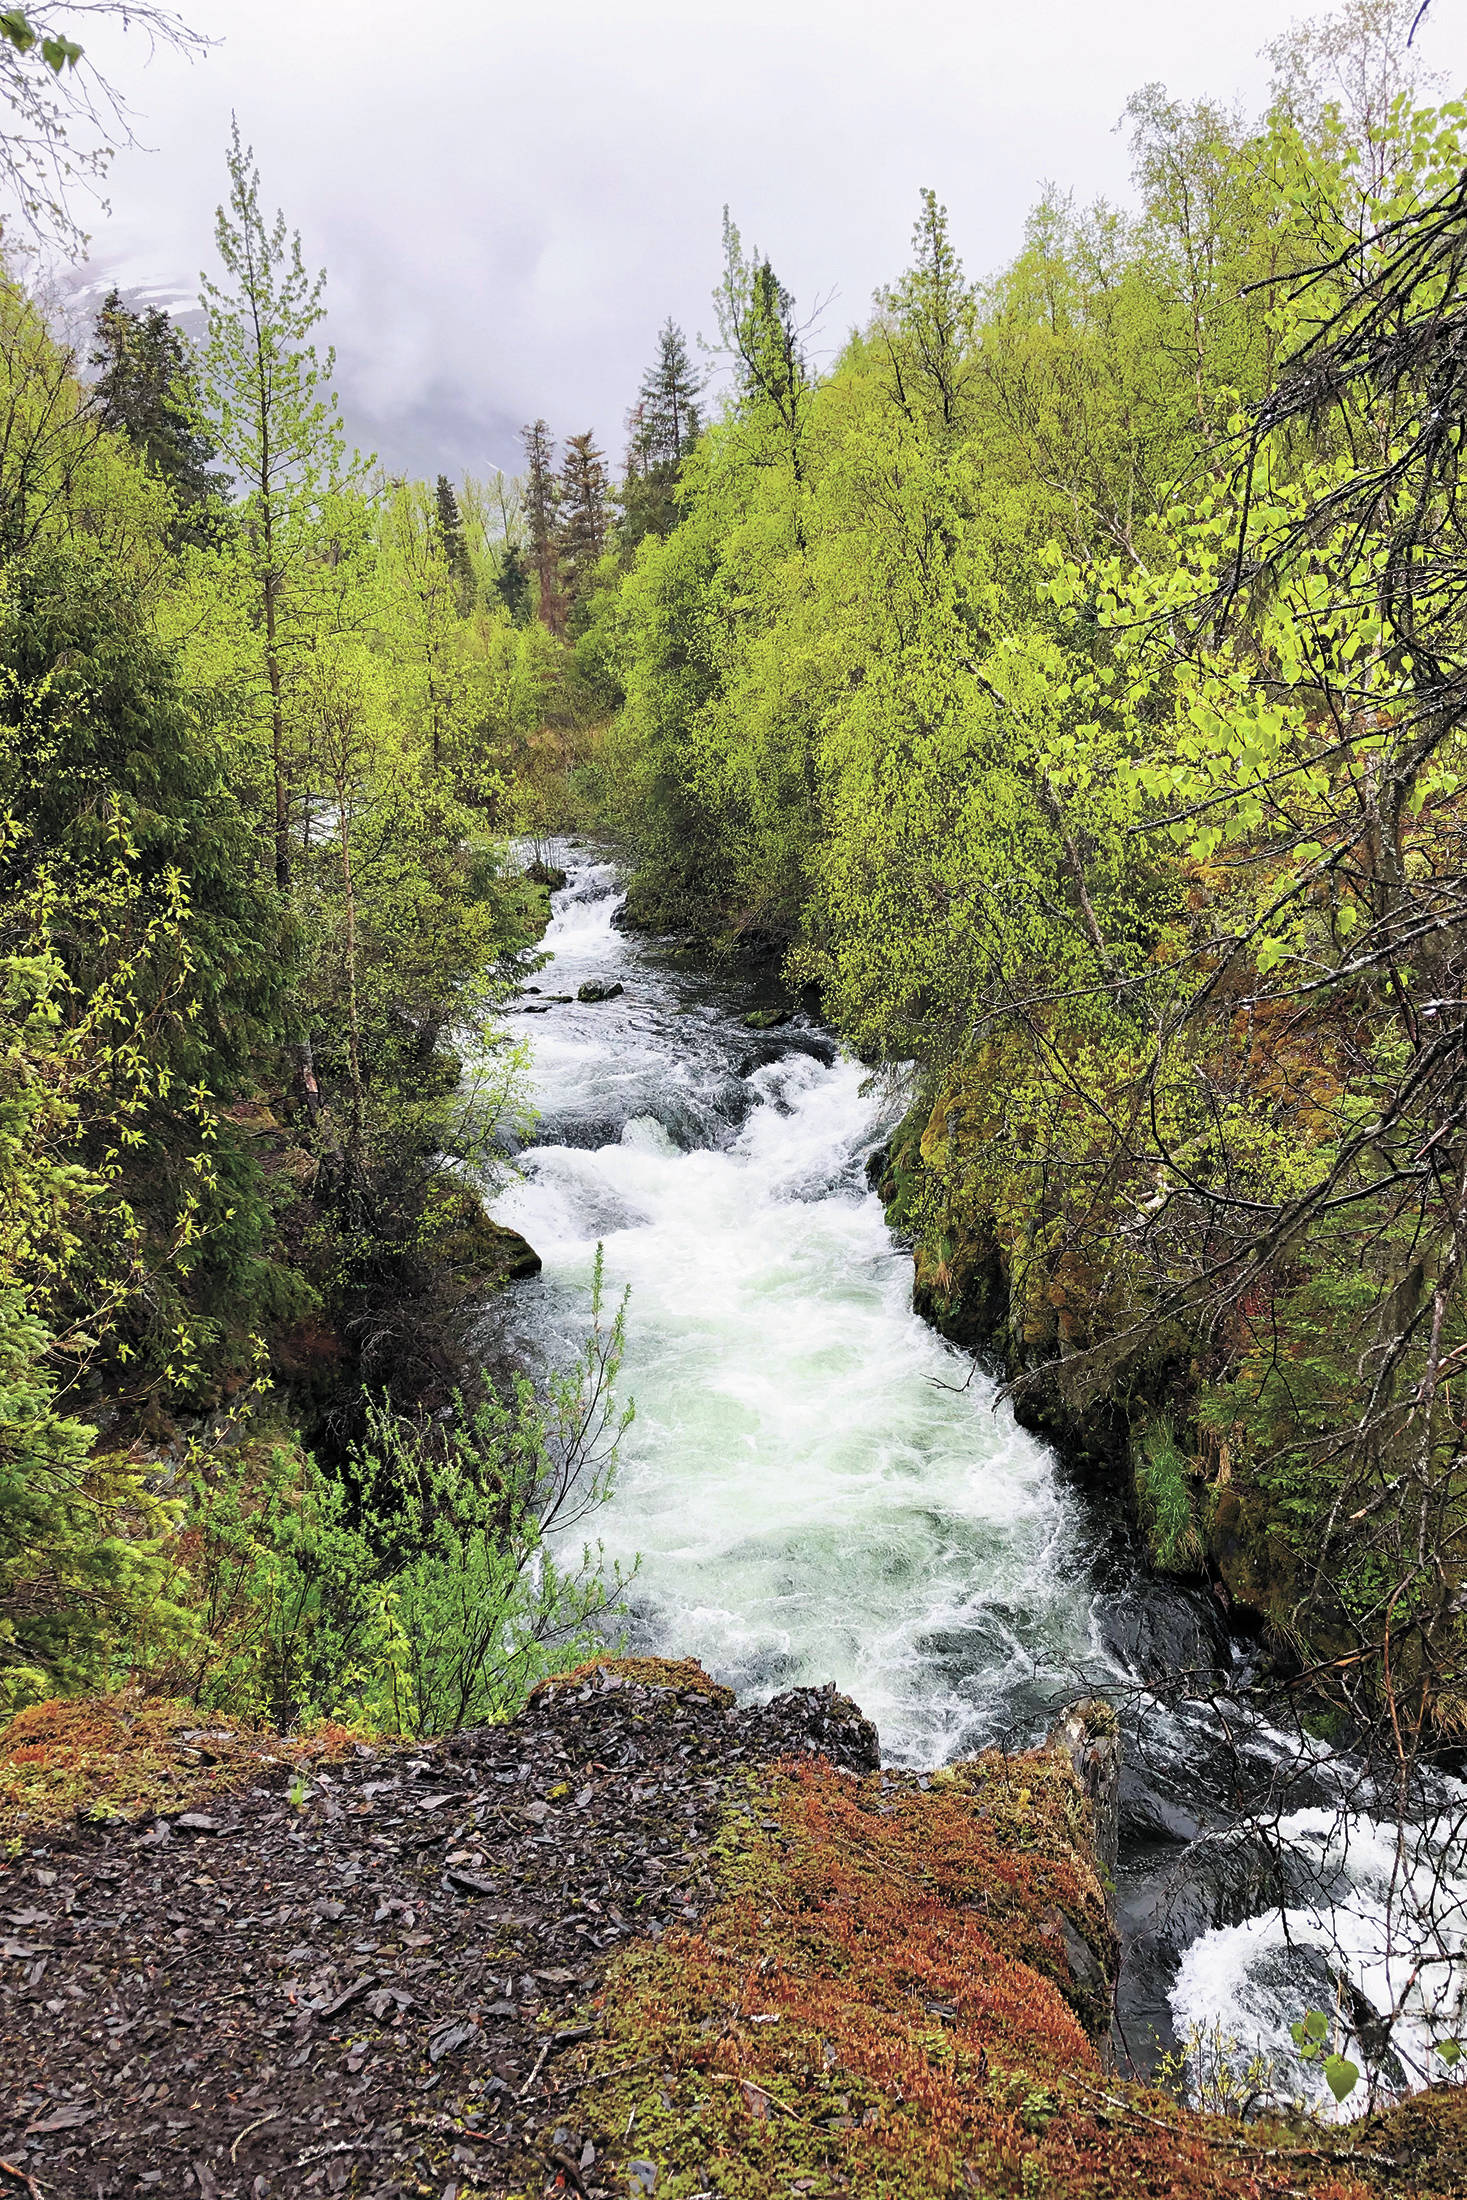 The Russian River Falls flow through the trees on a rainy, overcast Sunday, May 24, 2020 in Cooper Landing, Alaska. (Photo by Megan Pacer/Homer News)